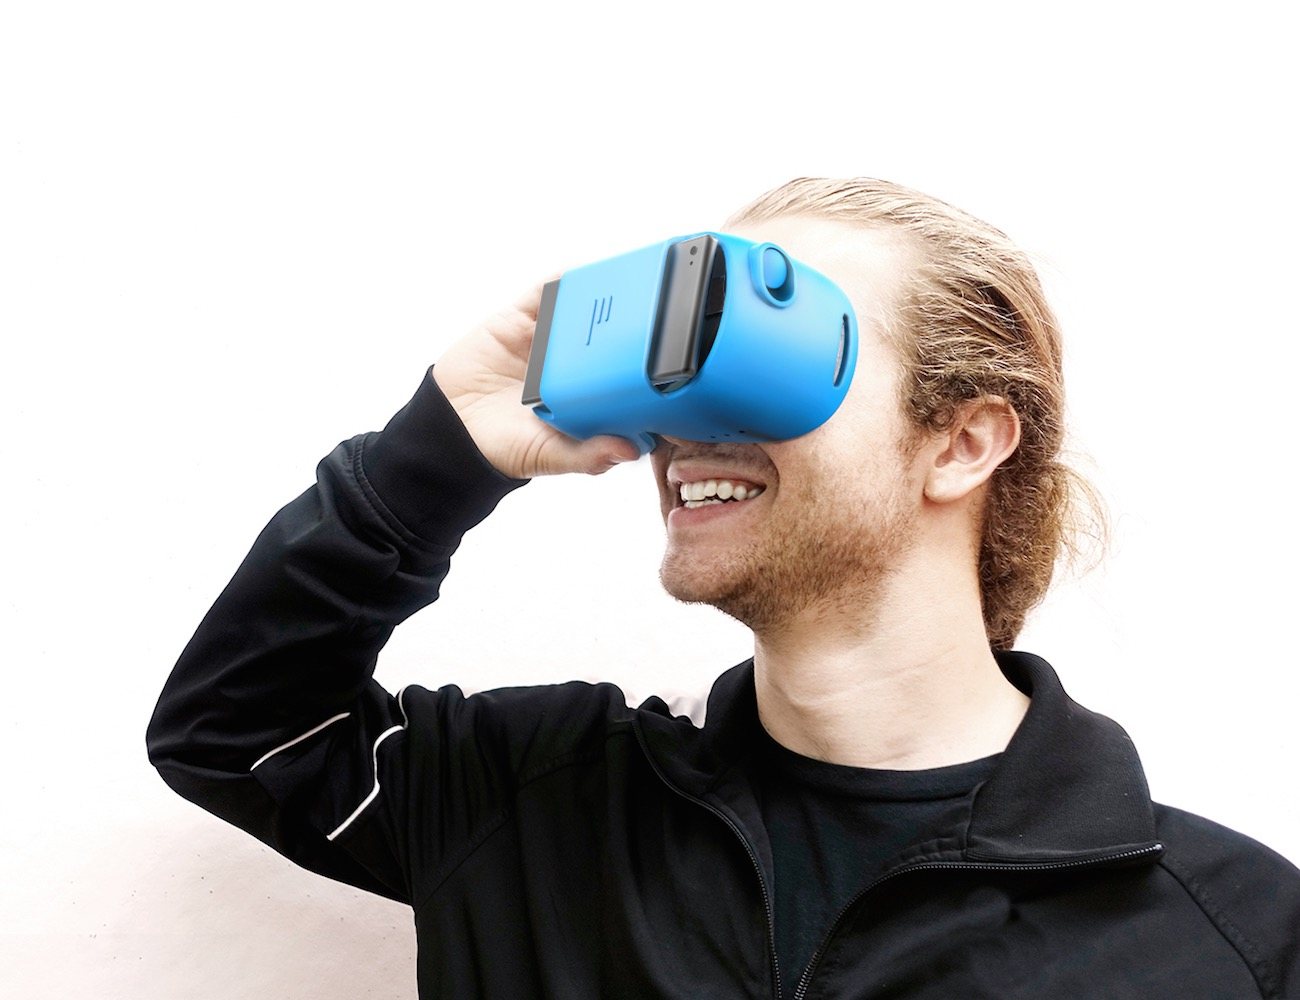 play-a-virtual-reality-device-for-everyone-01